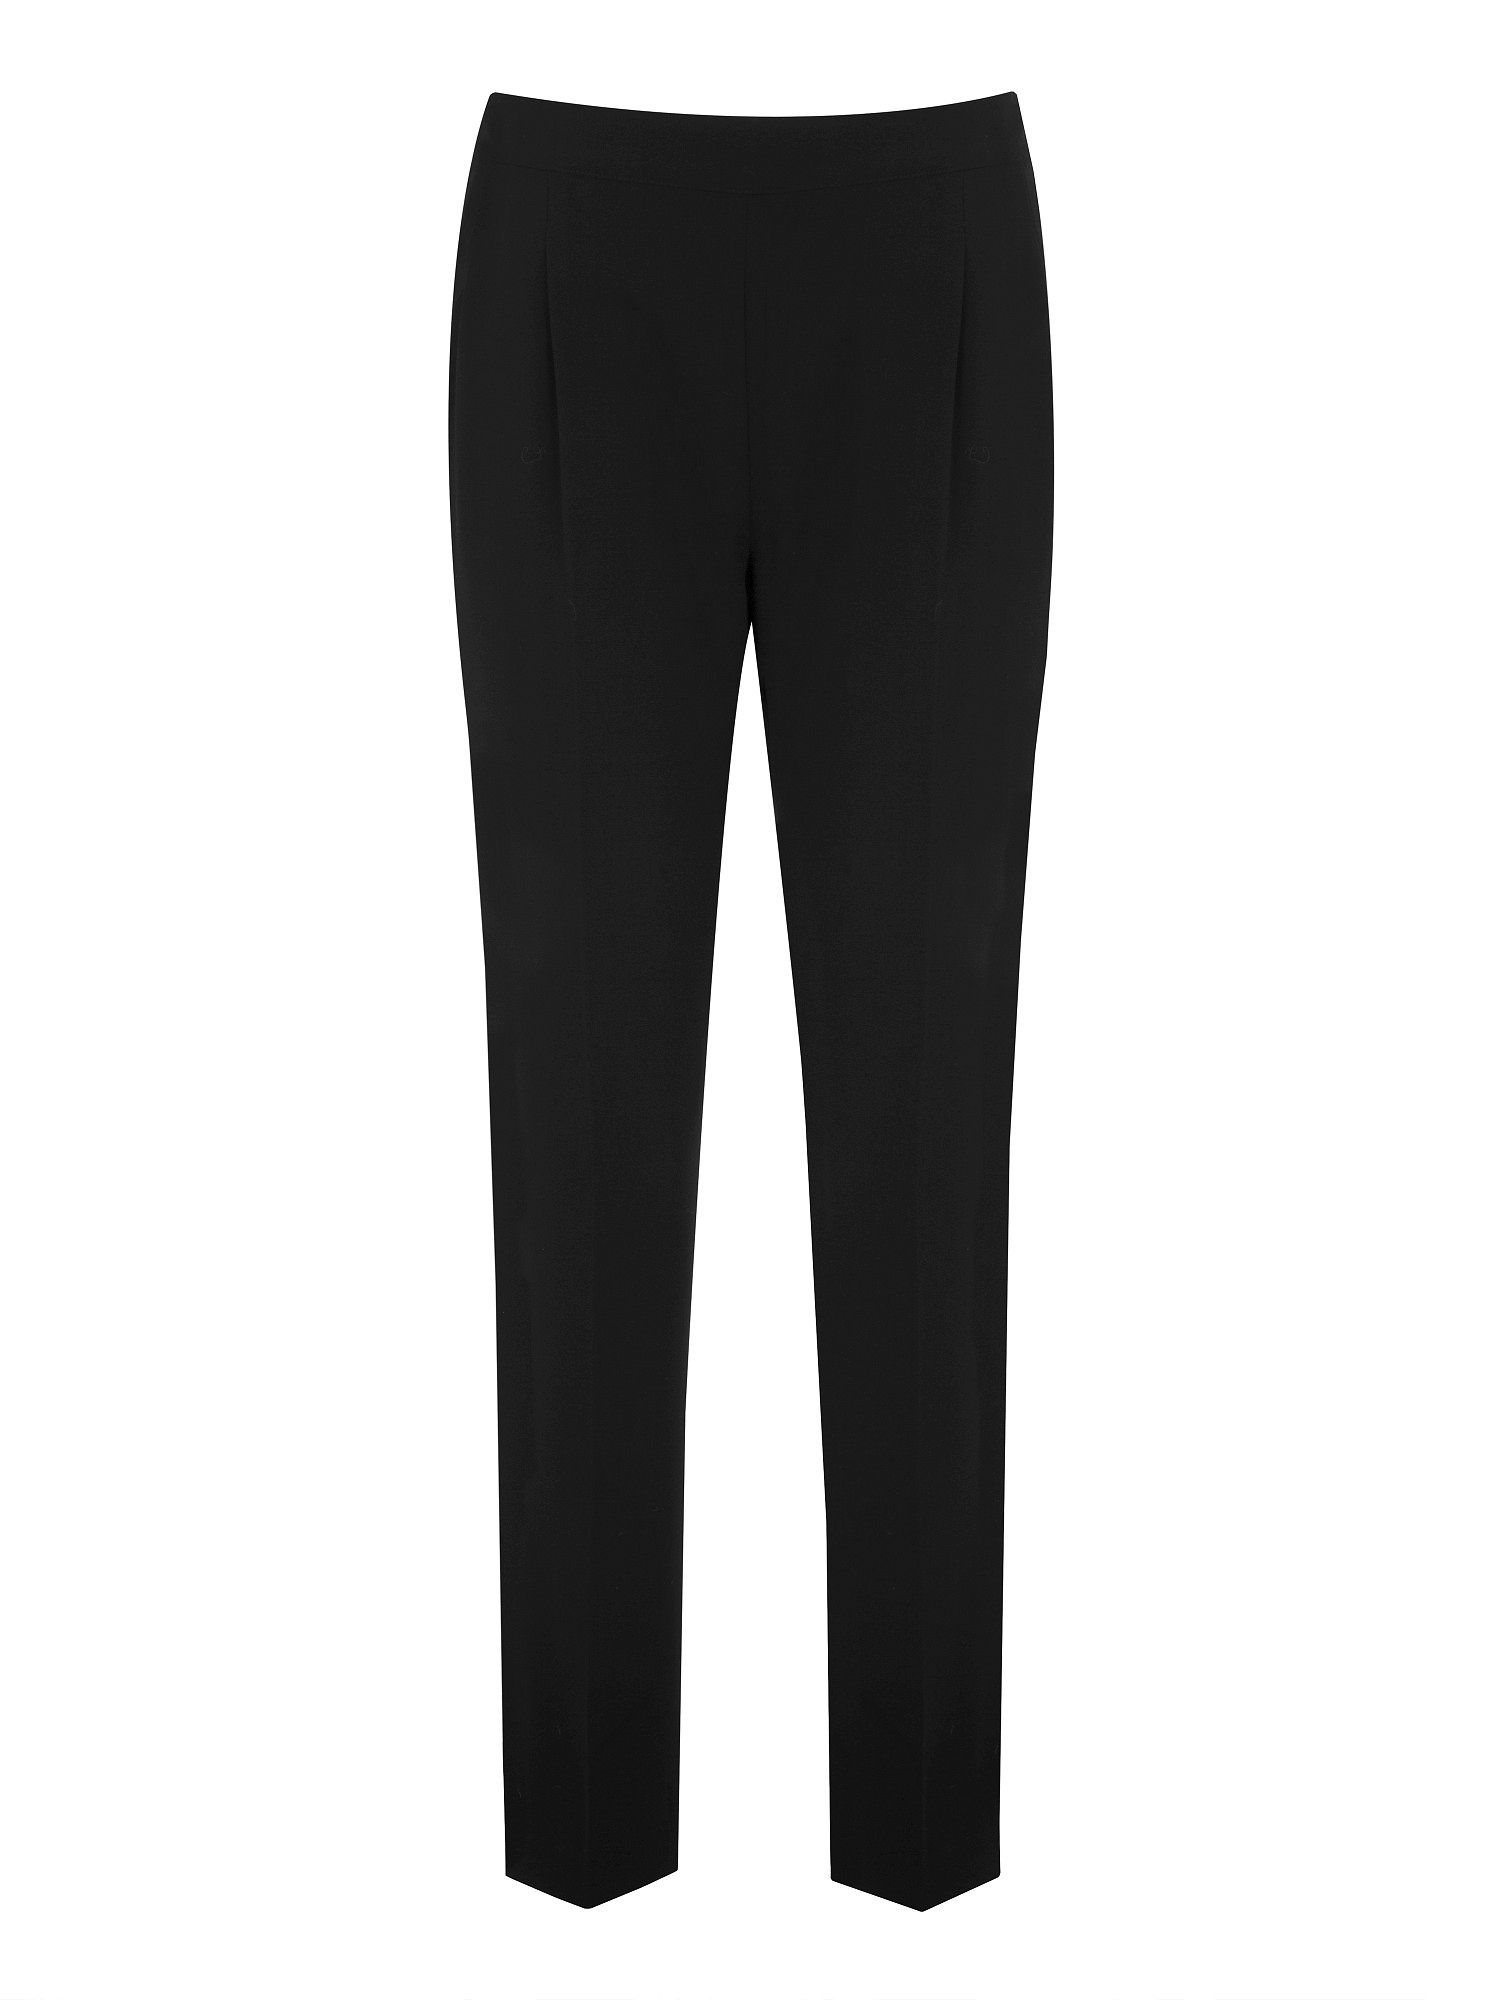 Black soft tapered trousers